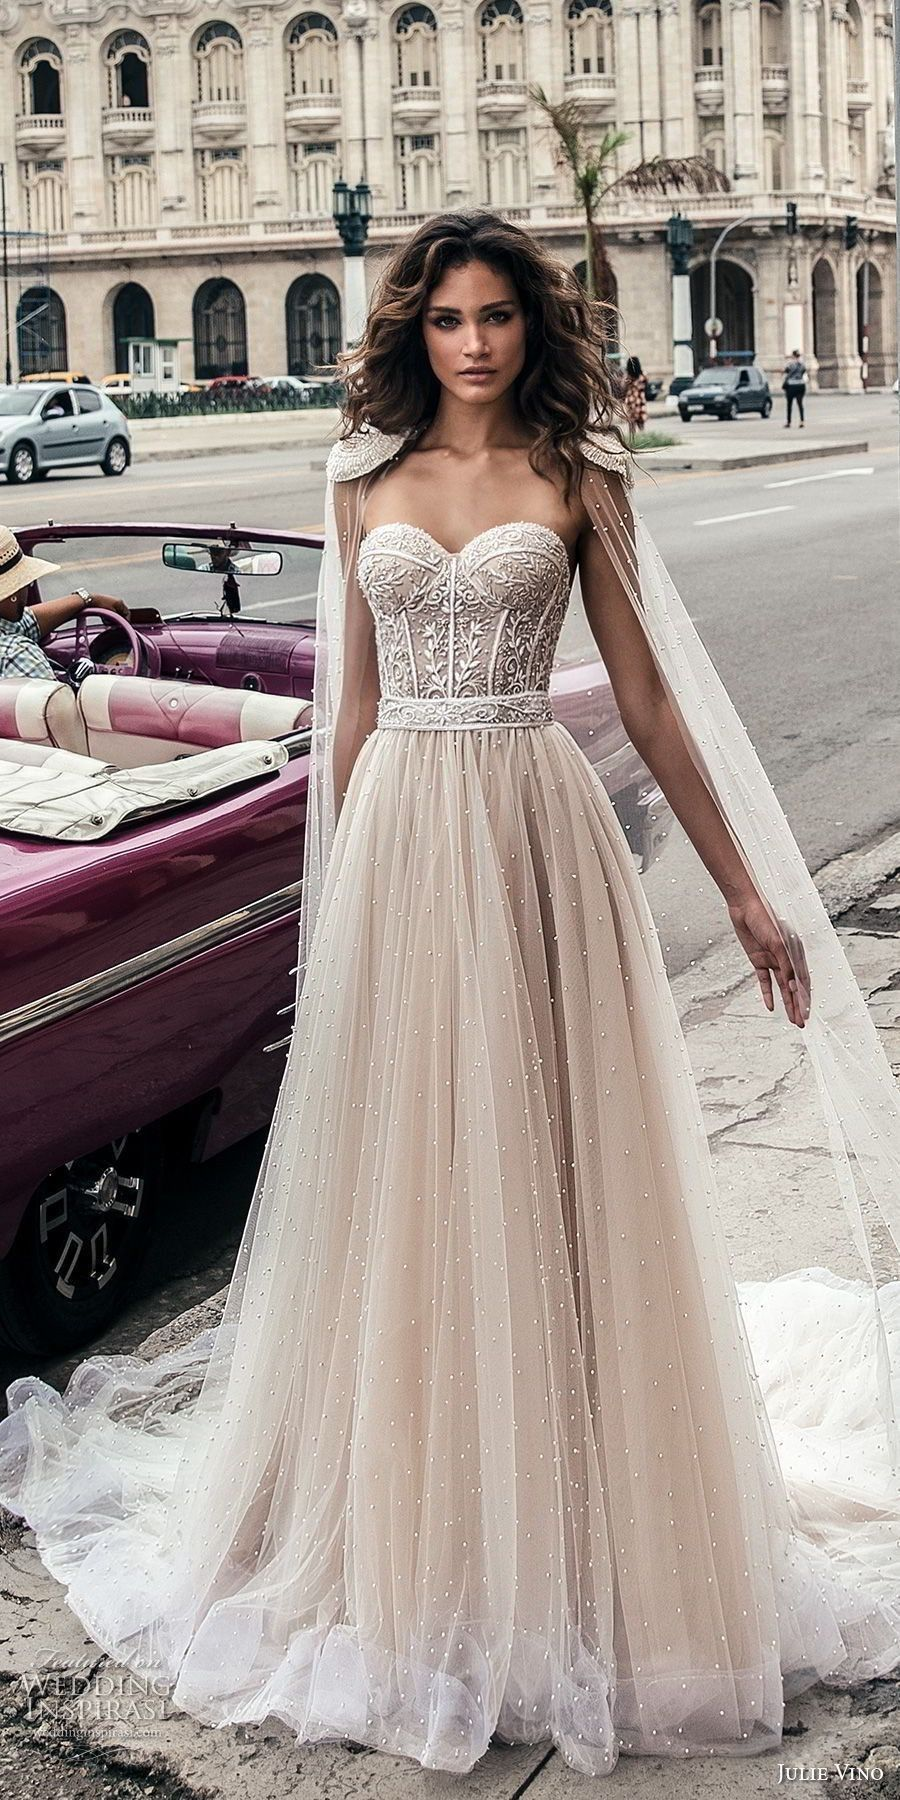 Lace dress with cape  a fucking cape thooooo  Weddings  Pinterest  Cape Wedding dress